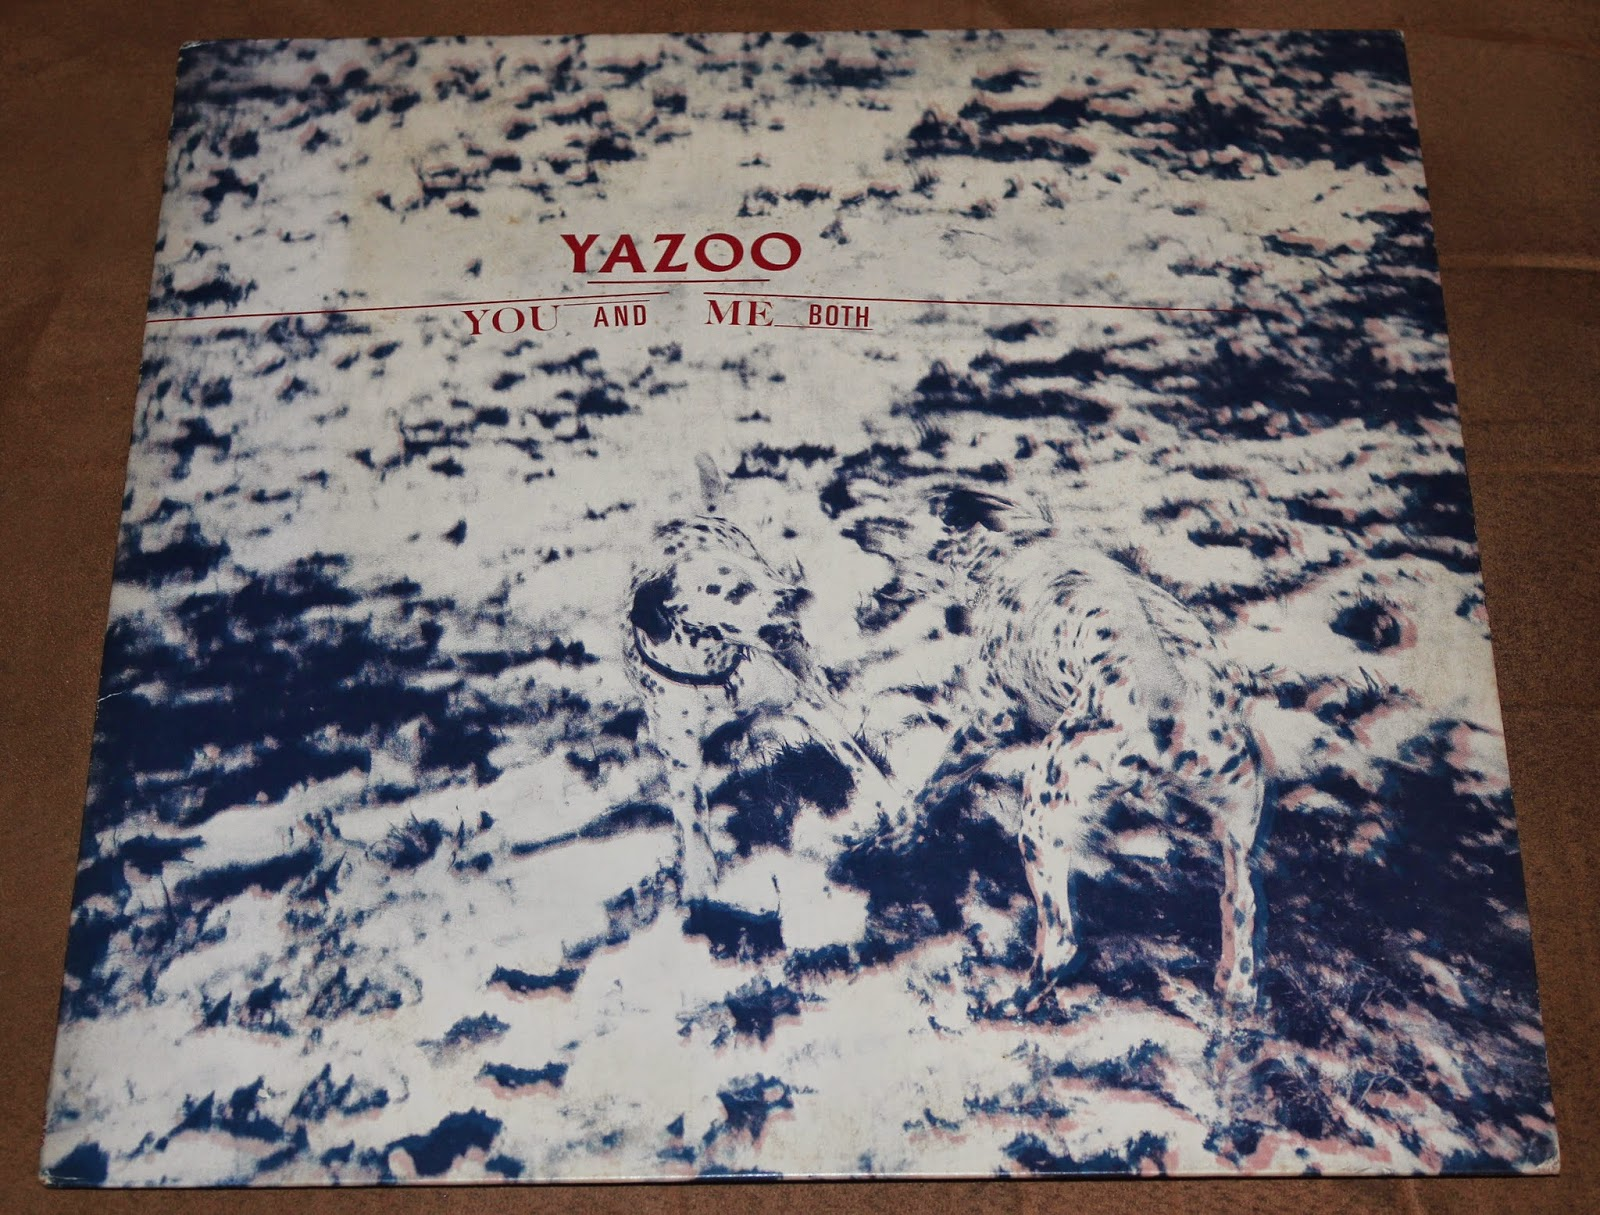 YAZOO You And Me Both